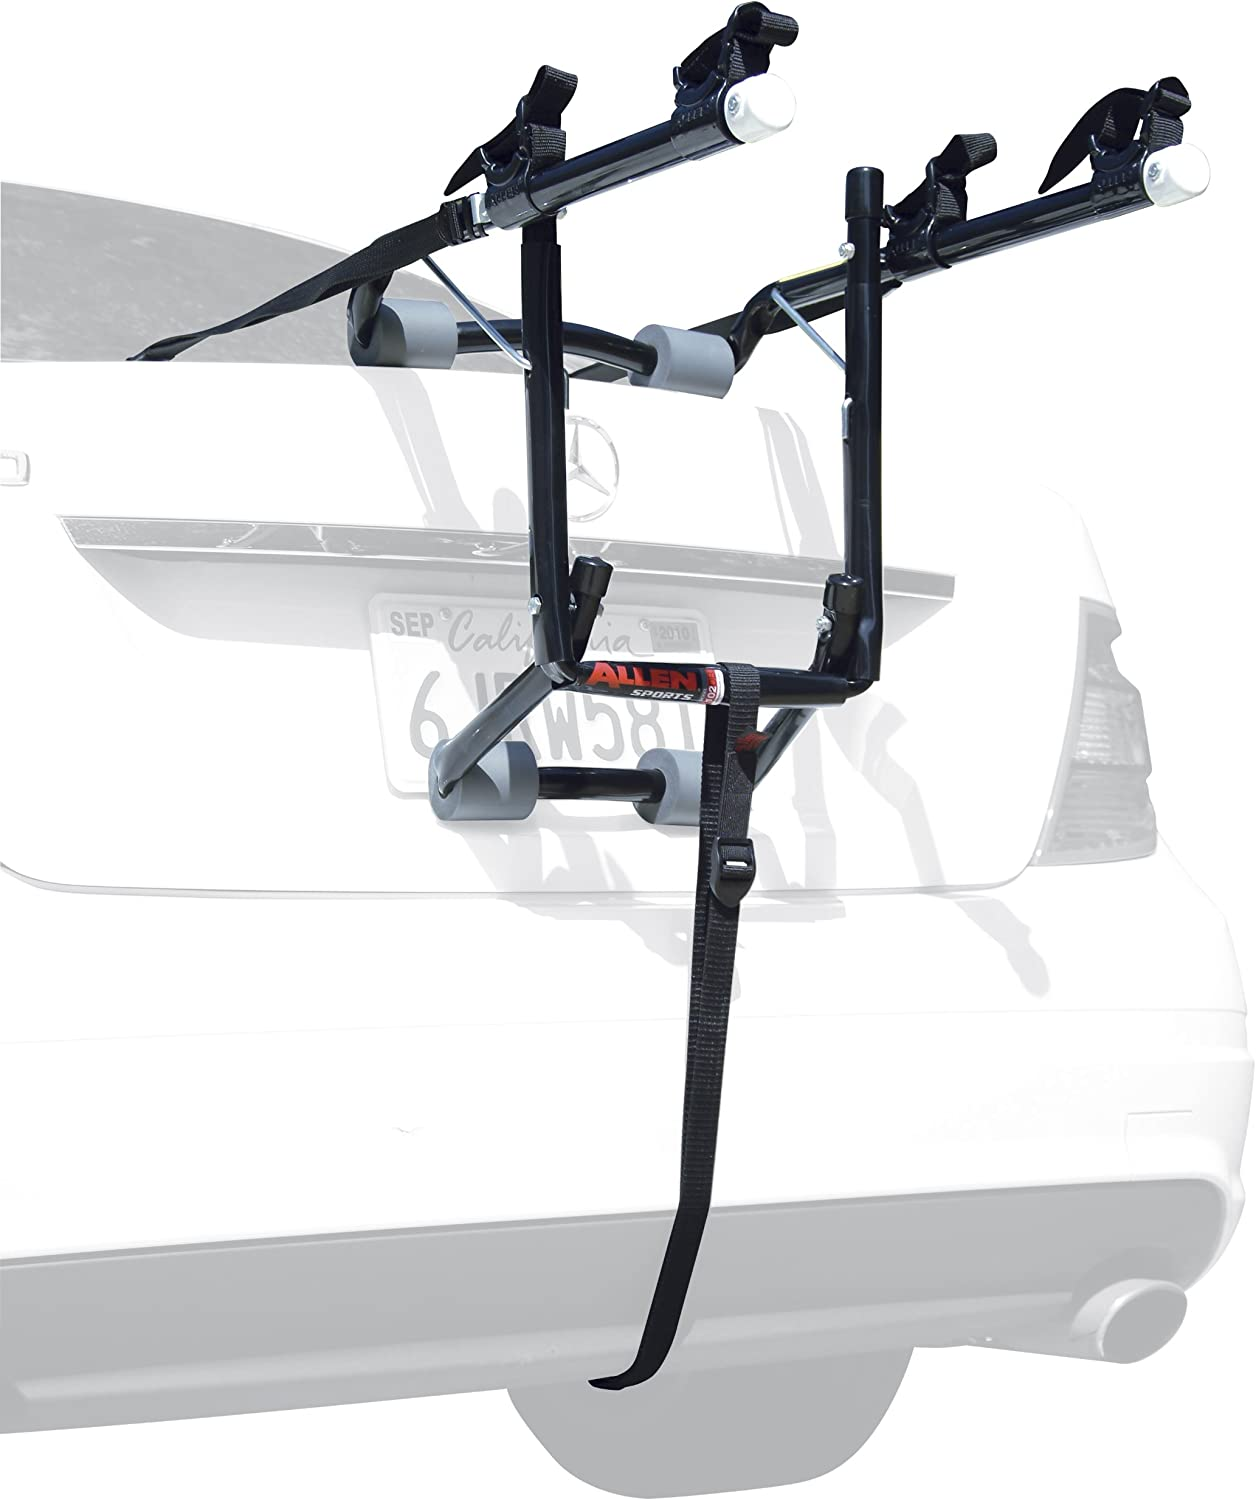 Image of a bike rack attached to a car's trunk supported with straps.